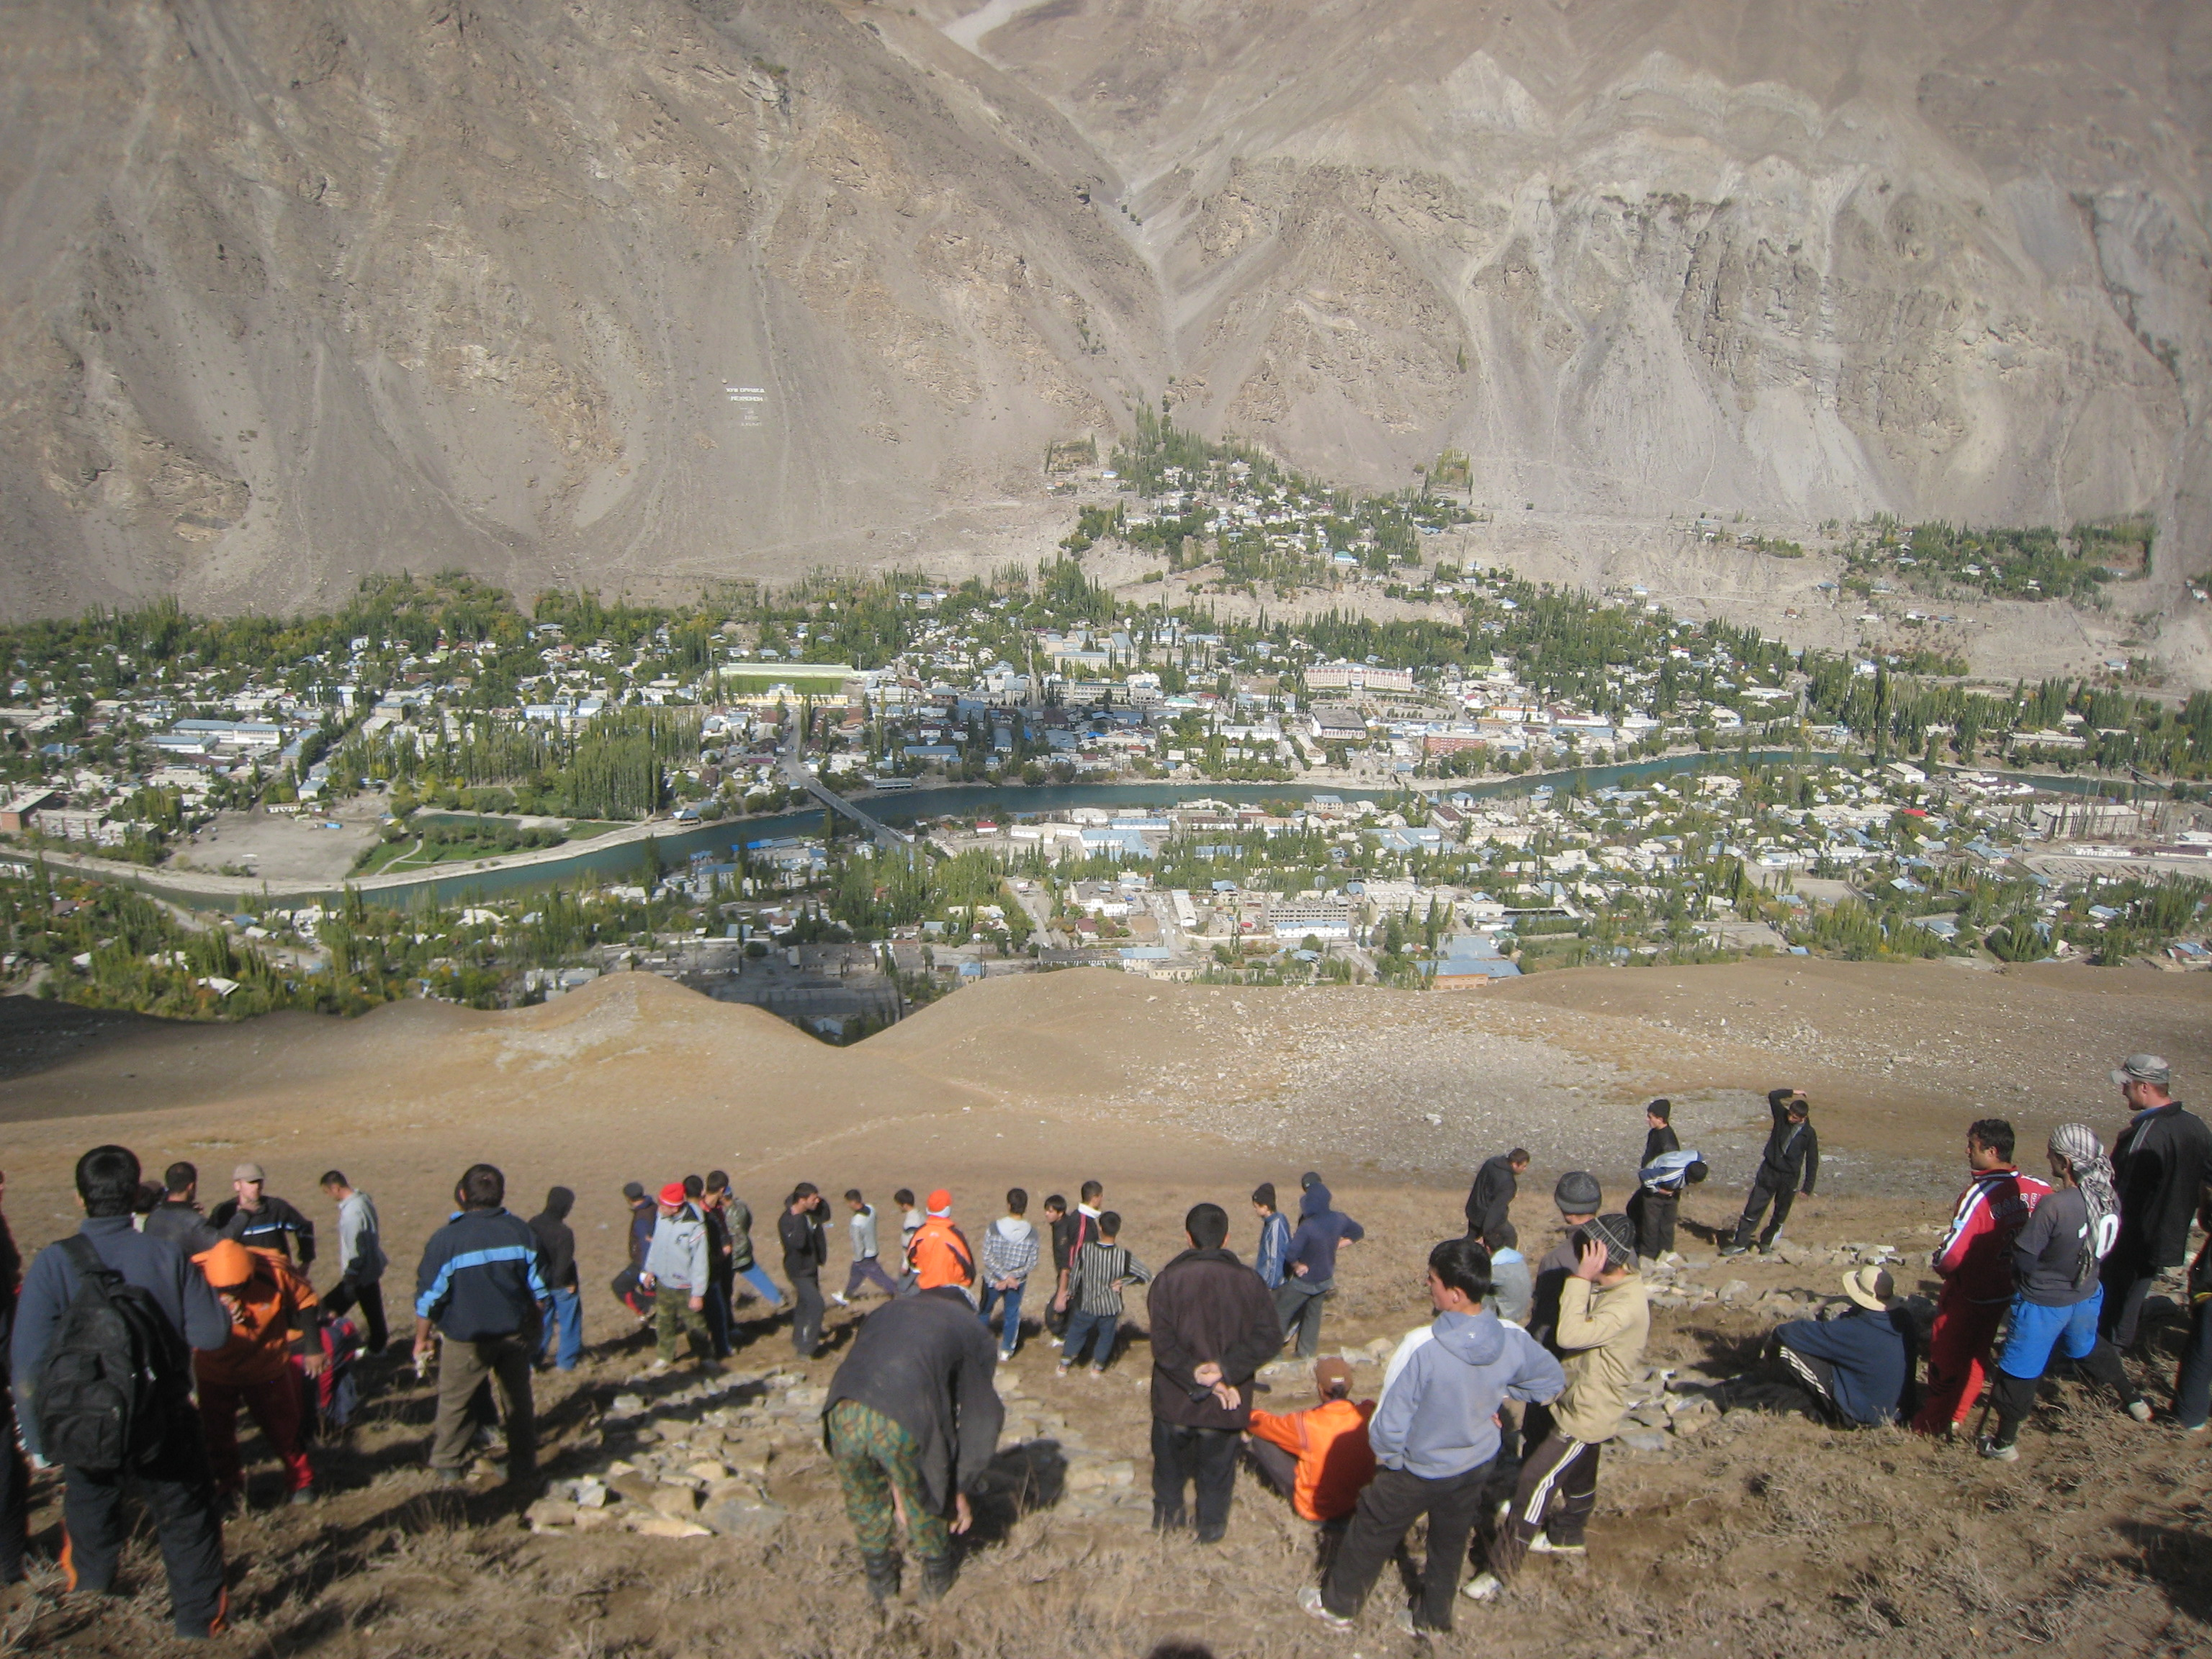 Volunteers move rocks to create a mountain-side Golden Jubilee welcome sign for Mawlana Hazar Imam. The city of Khorog is visible below. Photo: Gordon Cumming